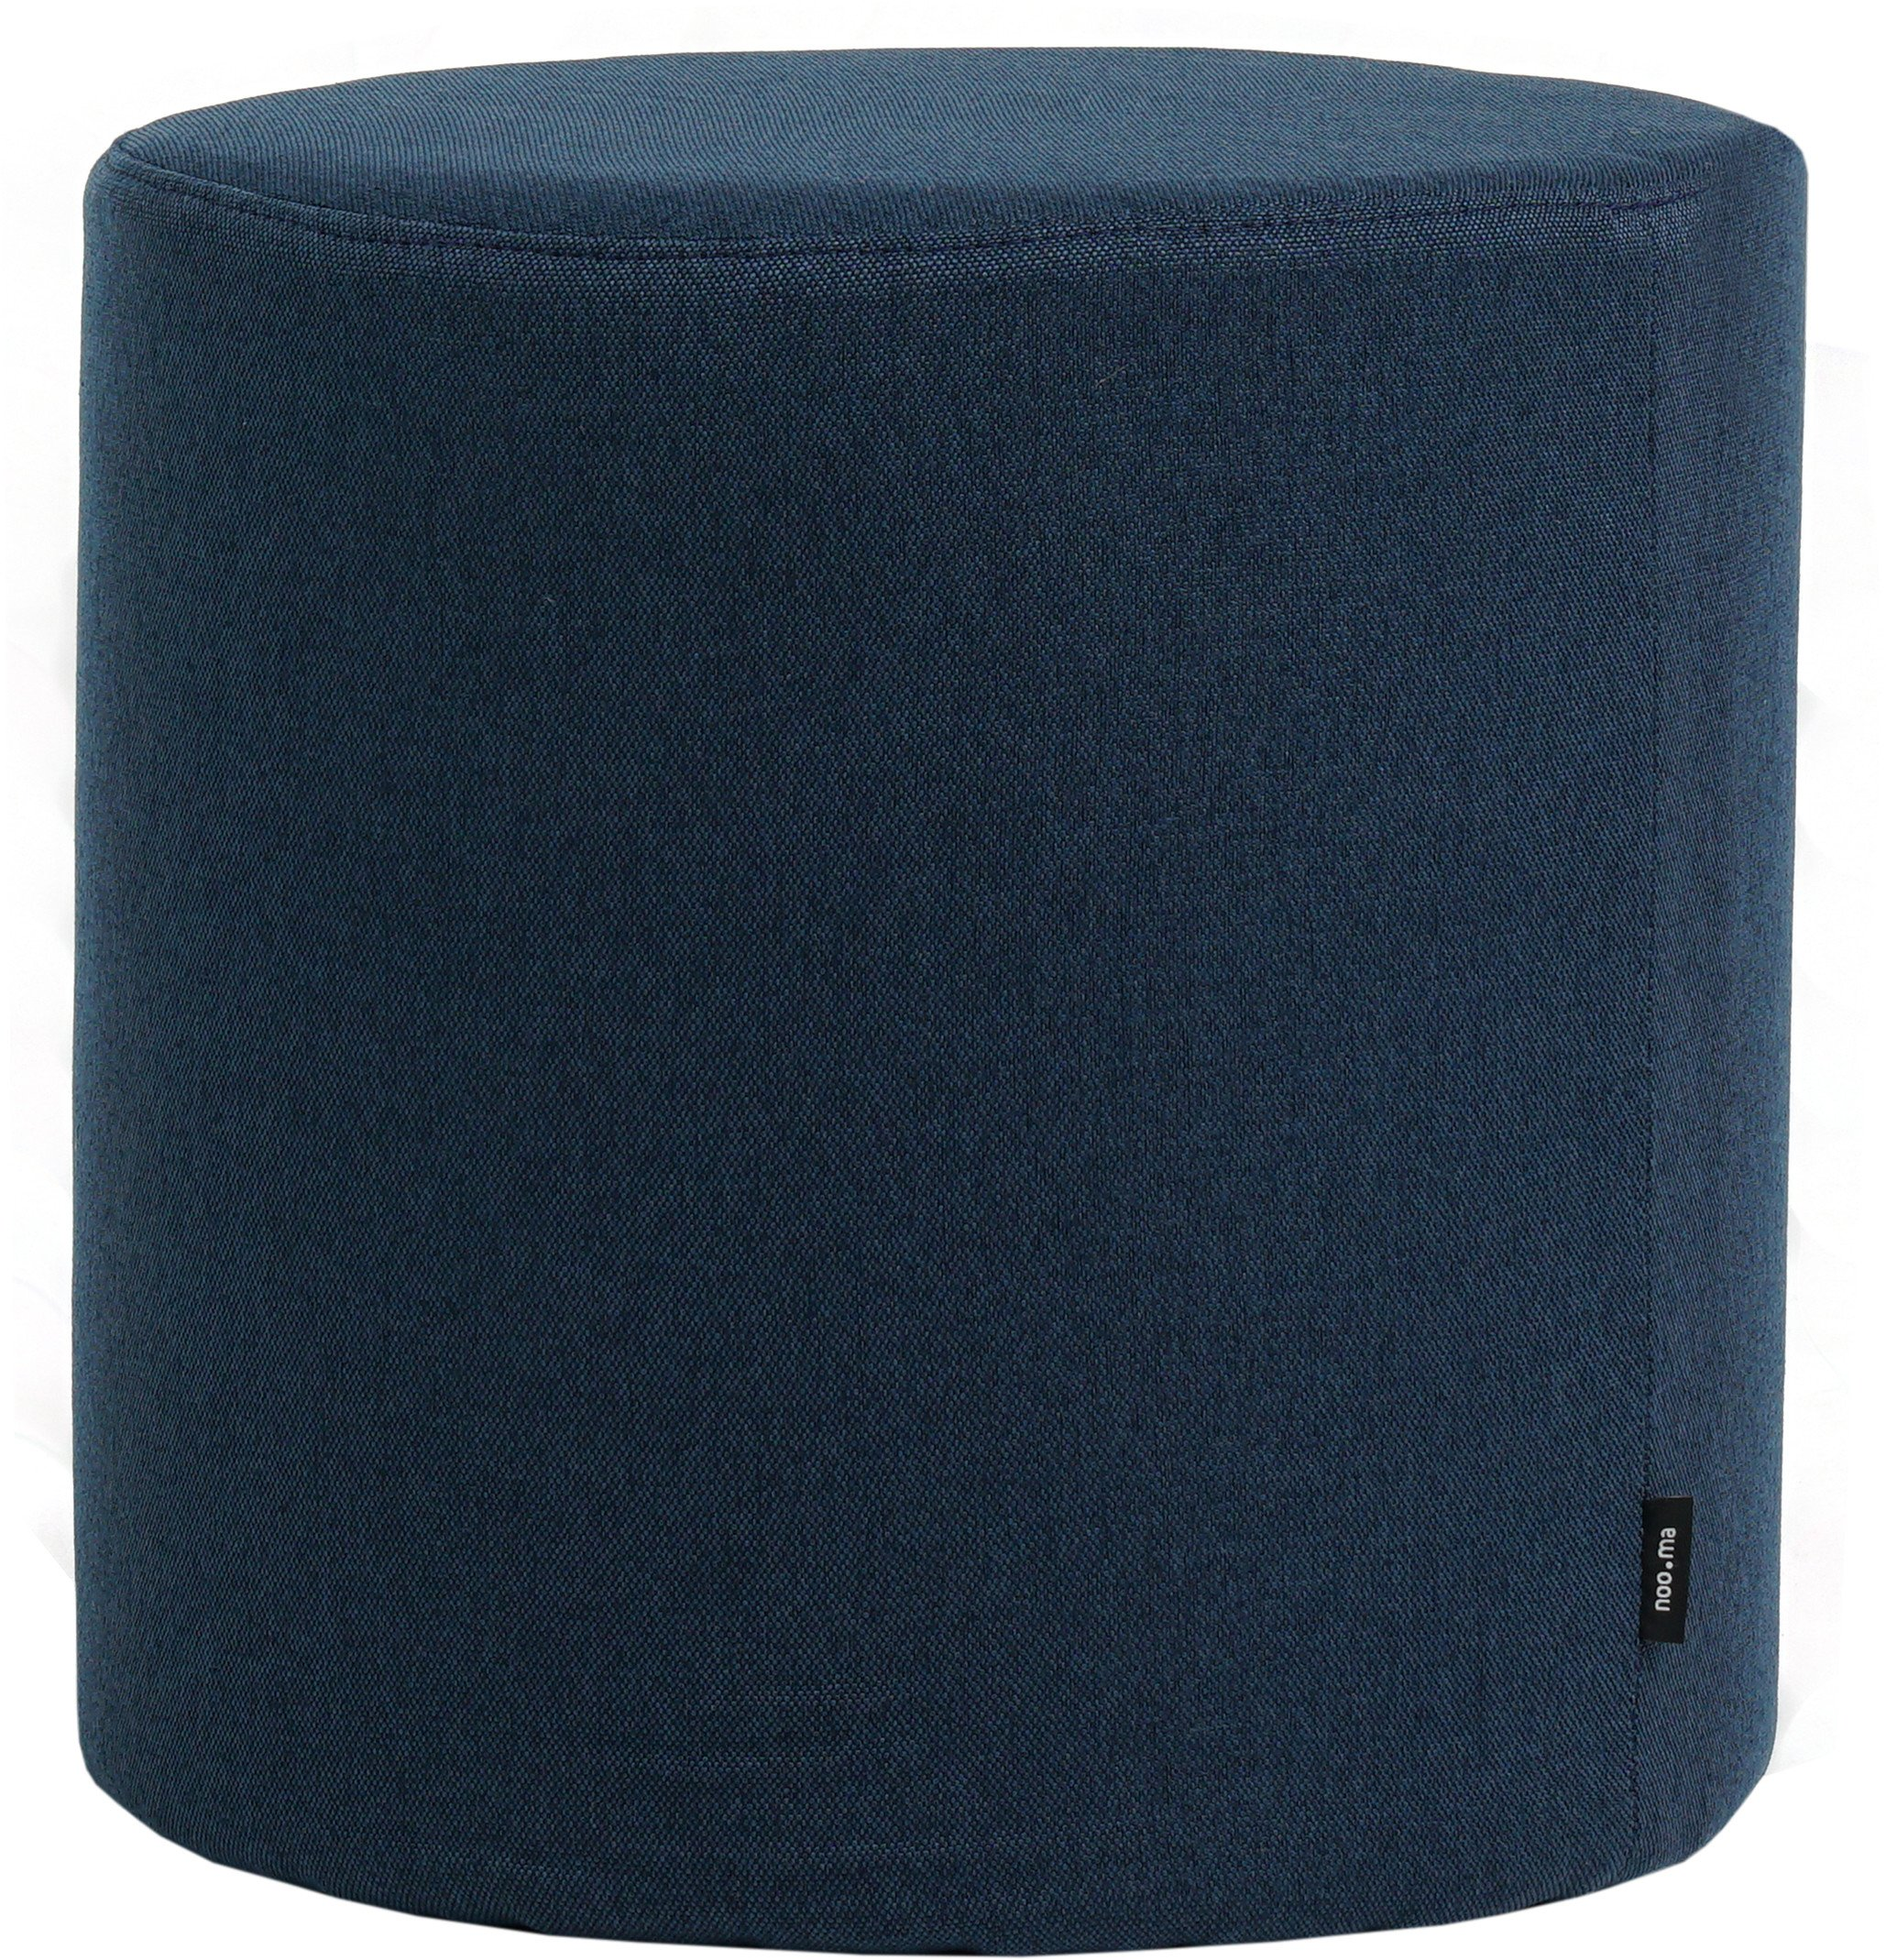 Folk Pouf Navy Blue Tall, noo.ma